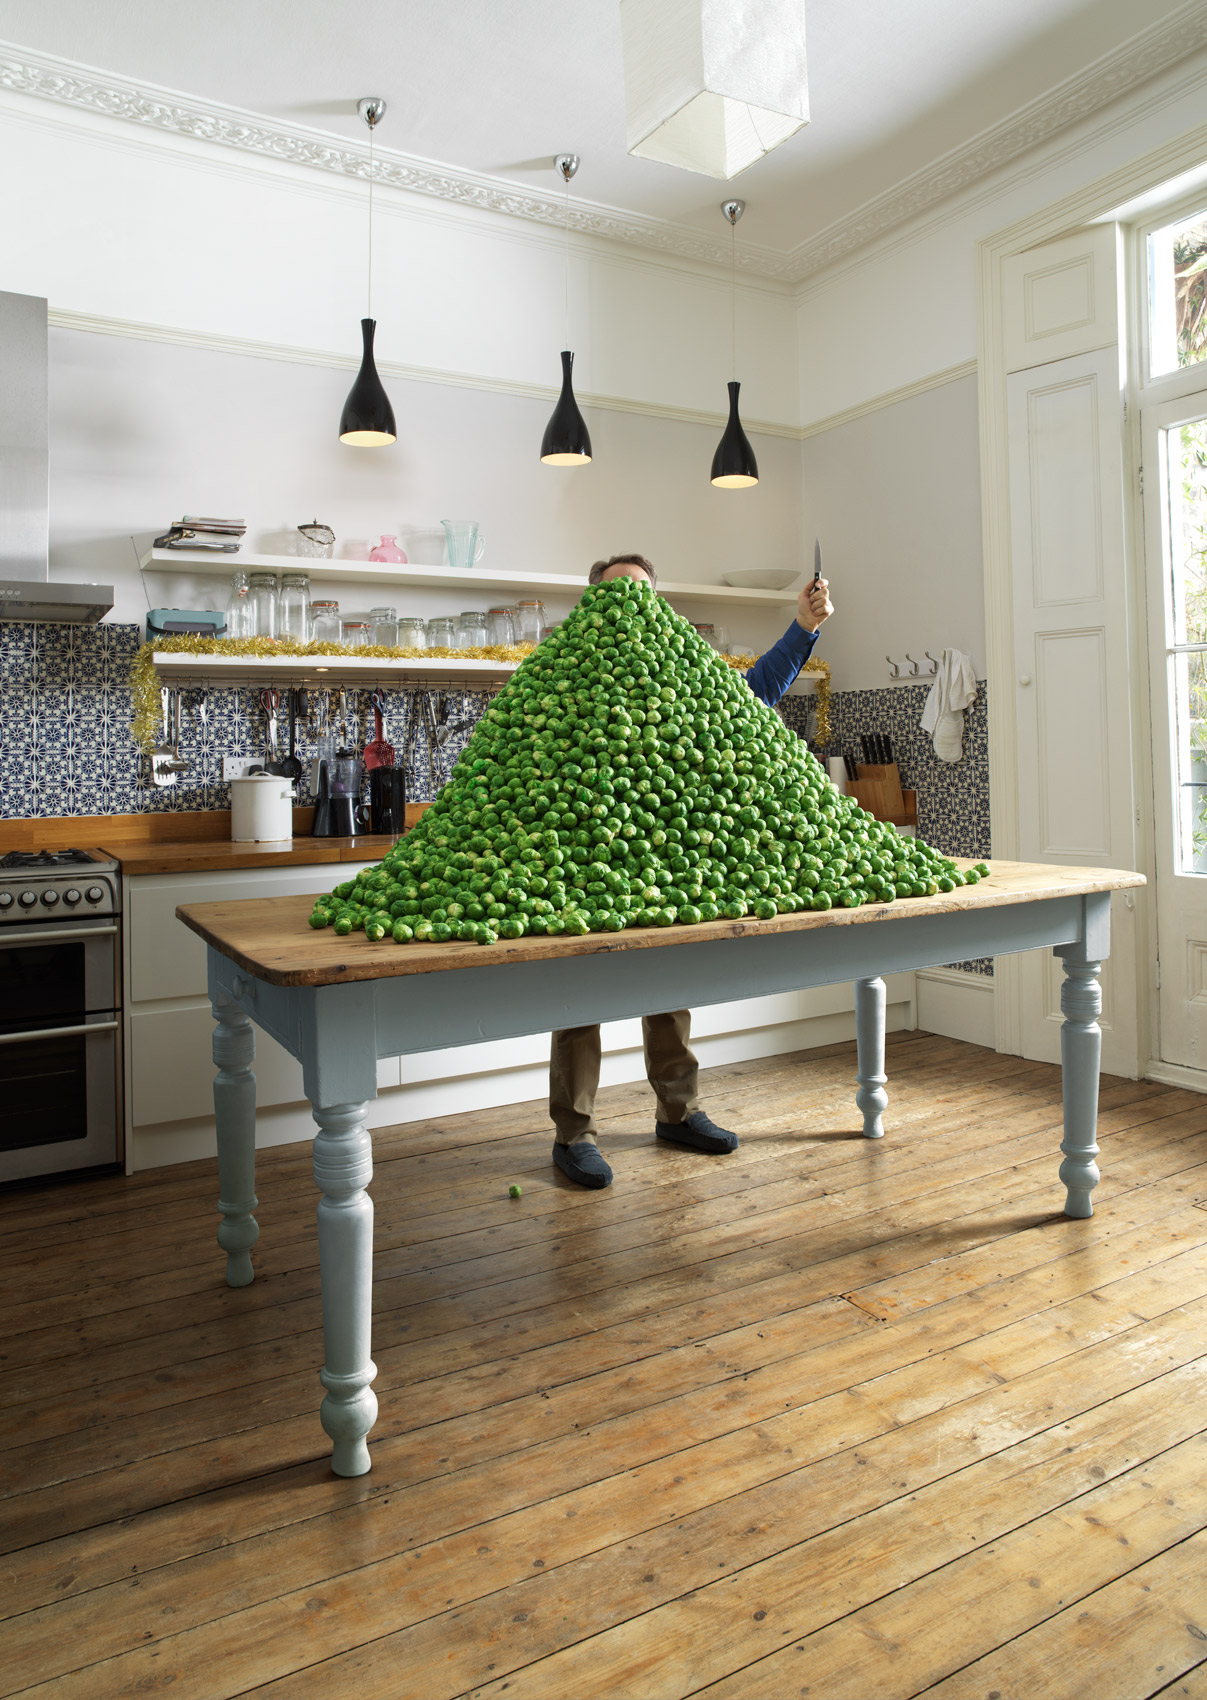 KHB3220_Give_That_Man_a_Bells_BrusselSprouts_R3